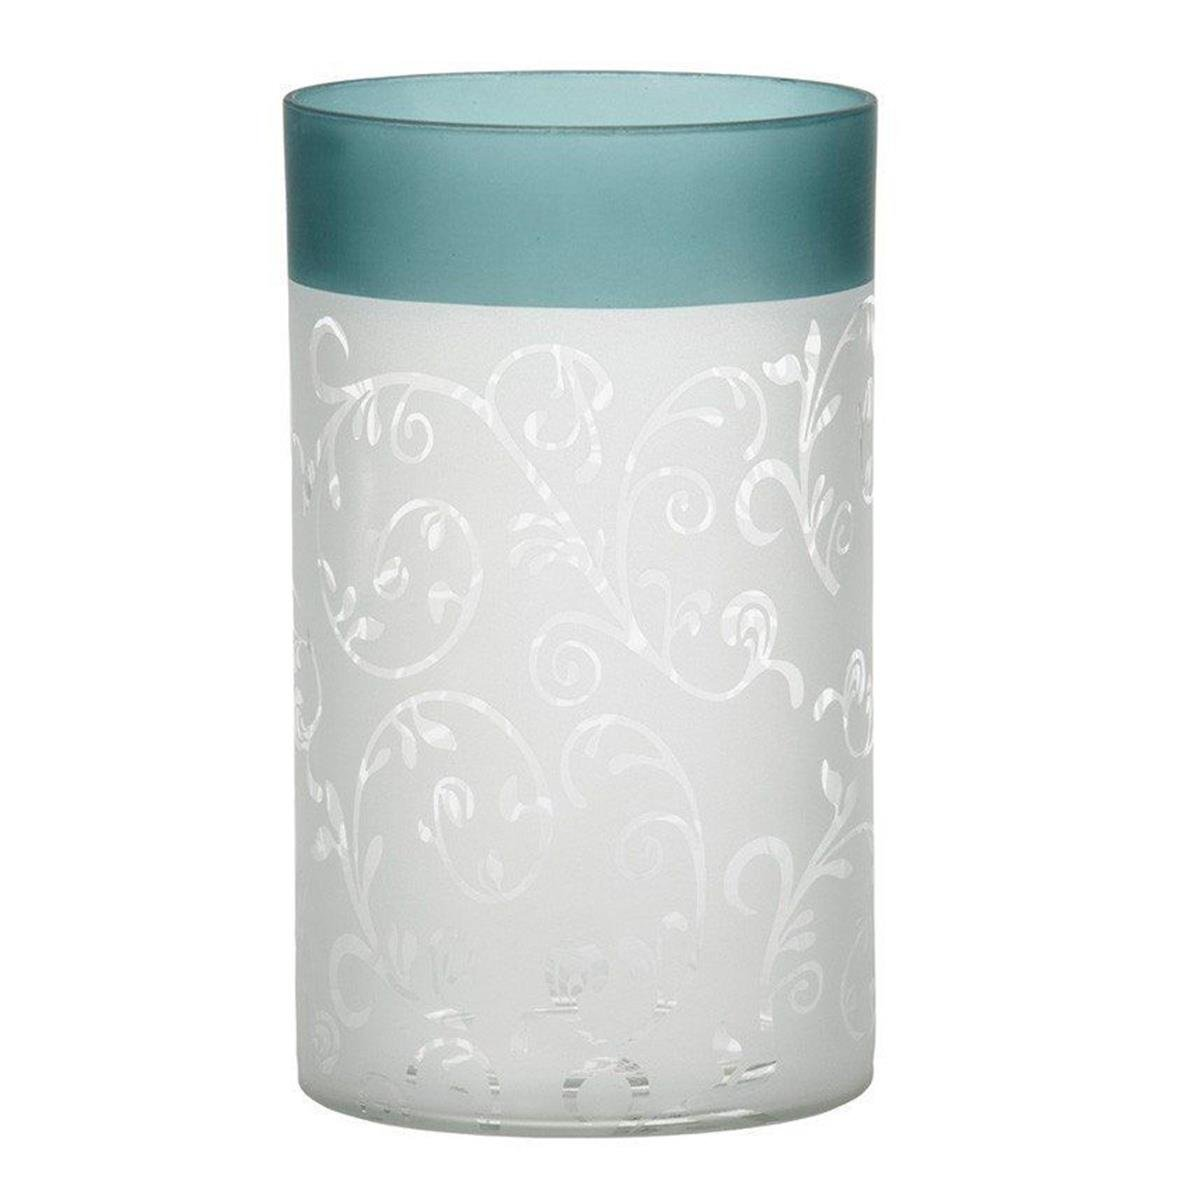 Yankee Candle 1521507 Teal Vine Glass Tealight Holder, Green/White, 15 x 10 x 10 cm